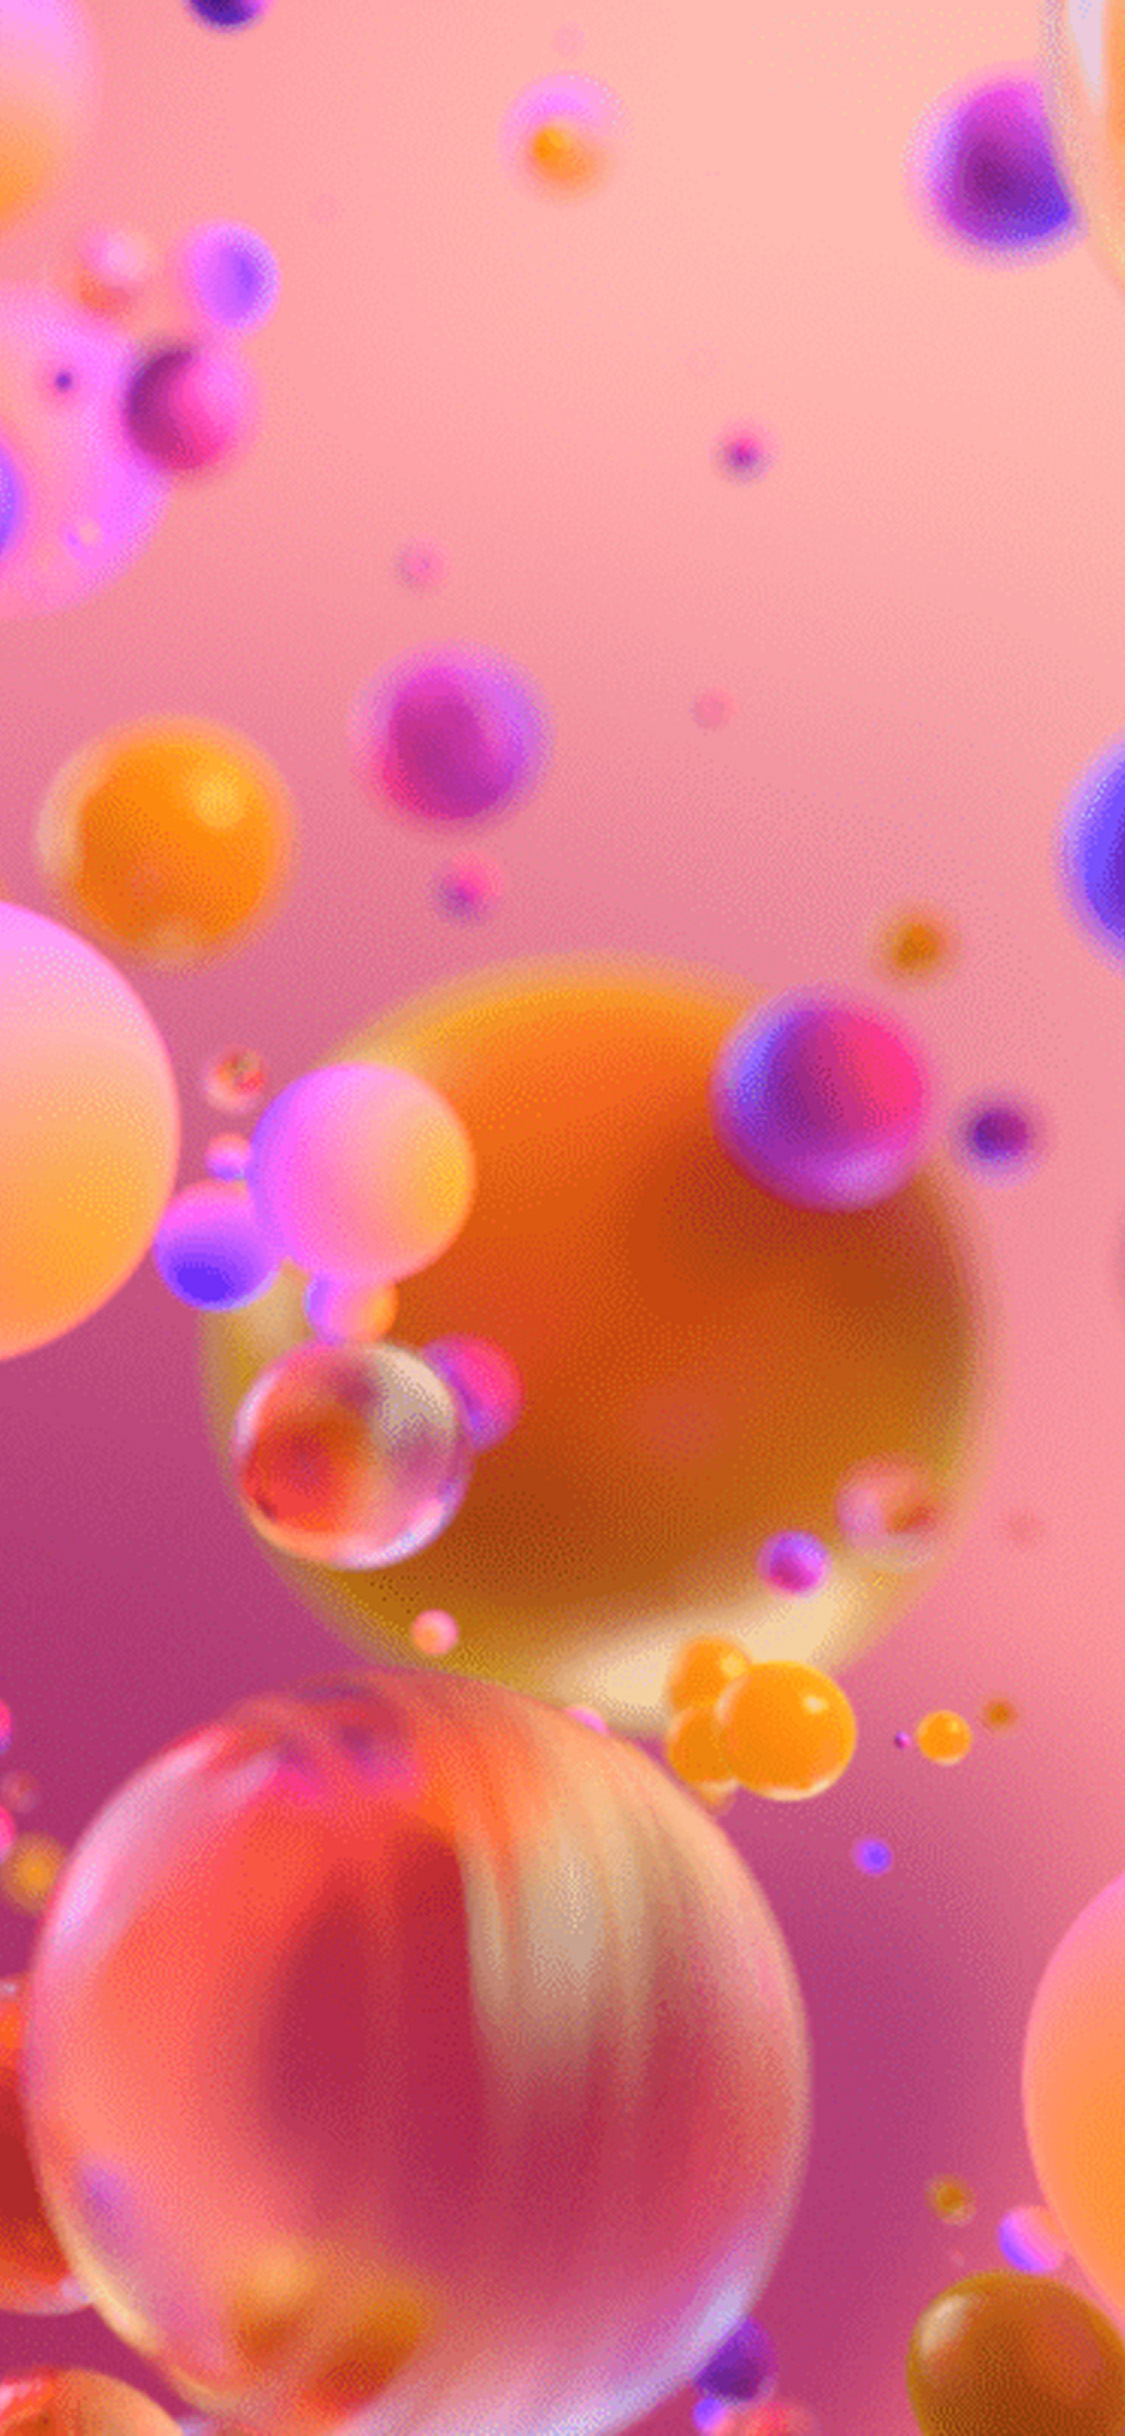 iPhonexpapers.com-Apple-iPhone-wallpaper-wd28-pattern-background-bubble-pink-red-fantastic